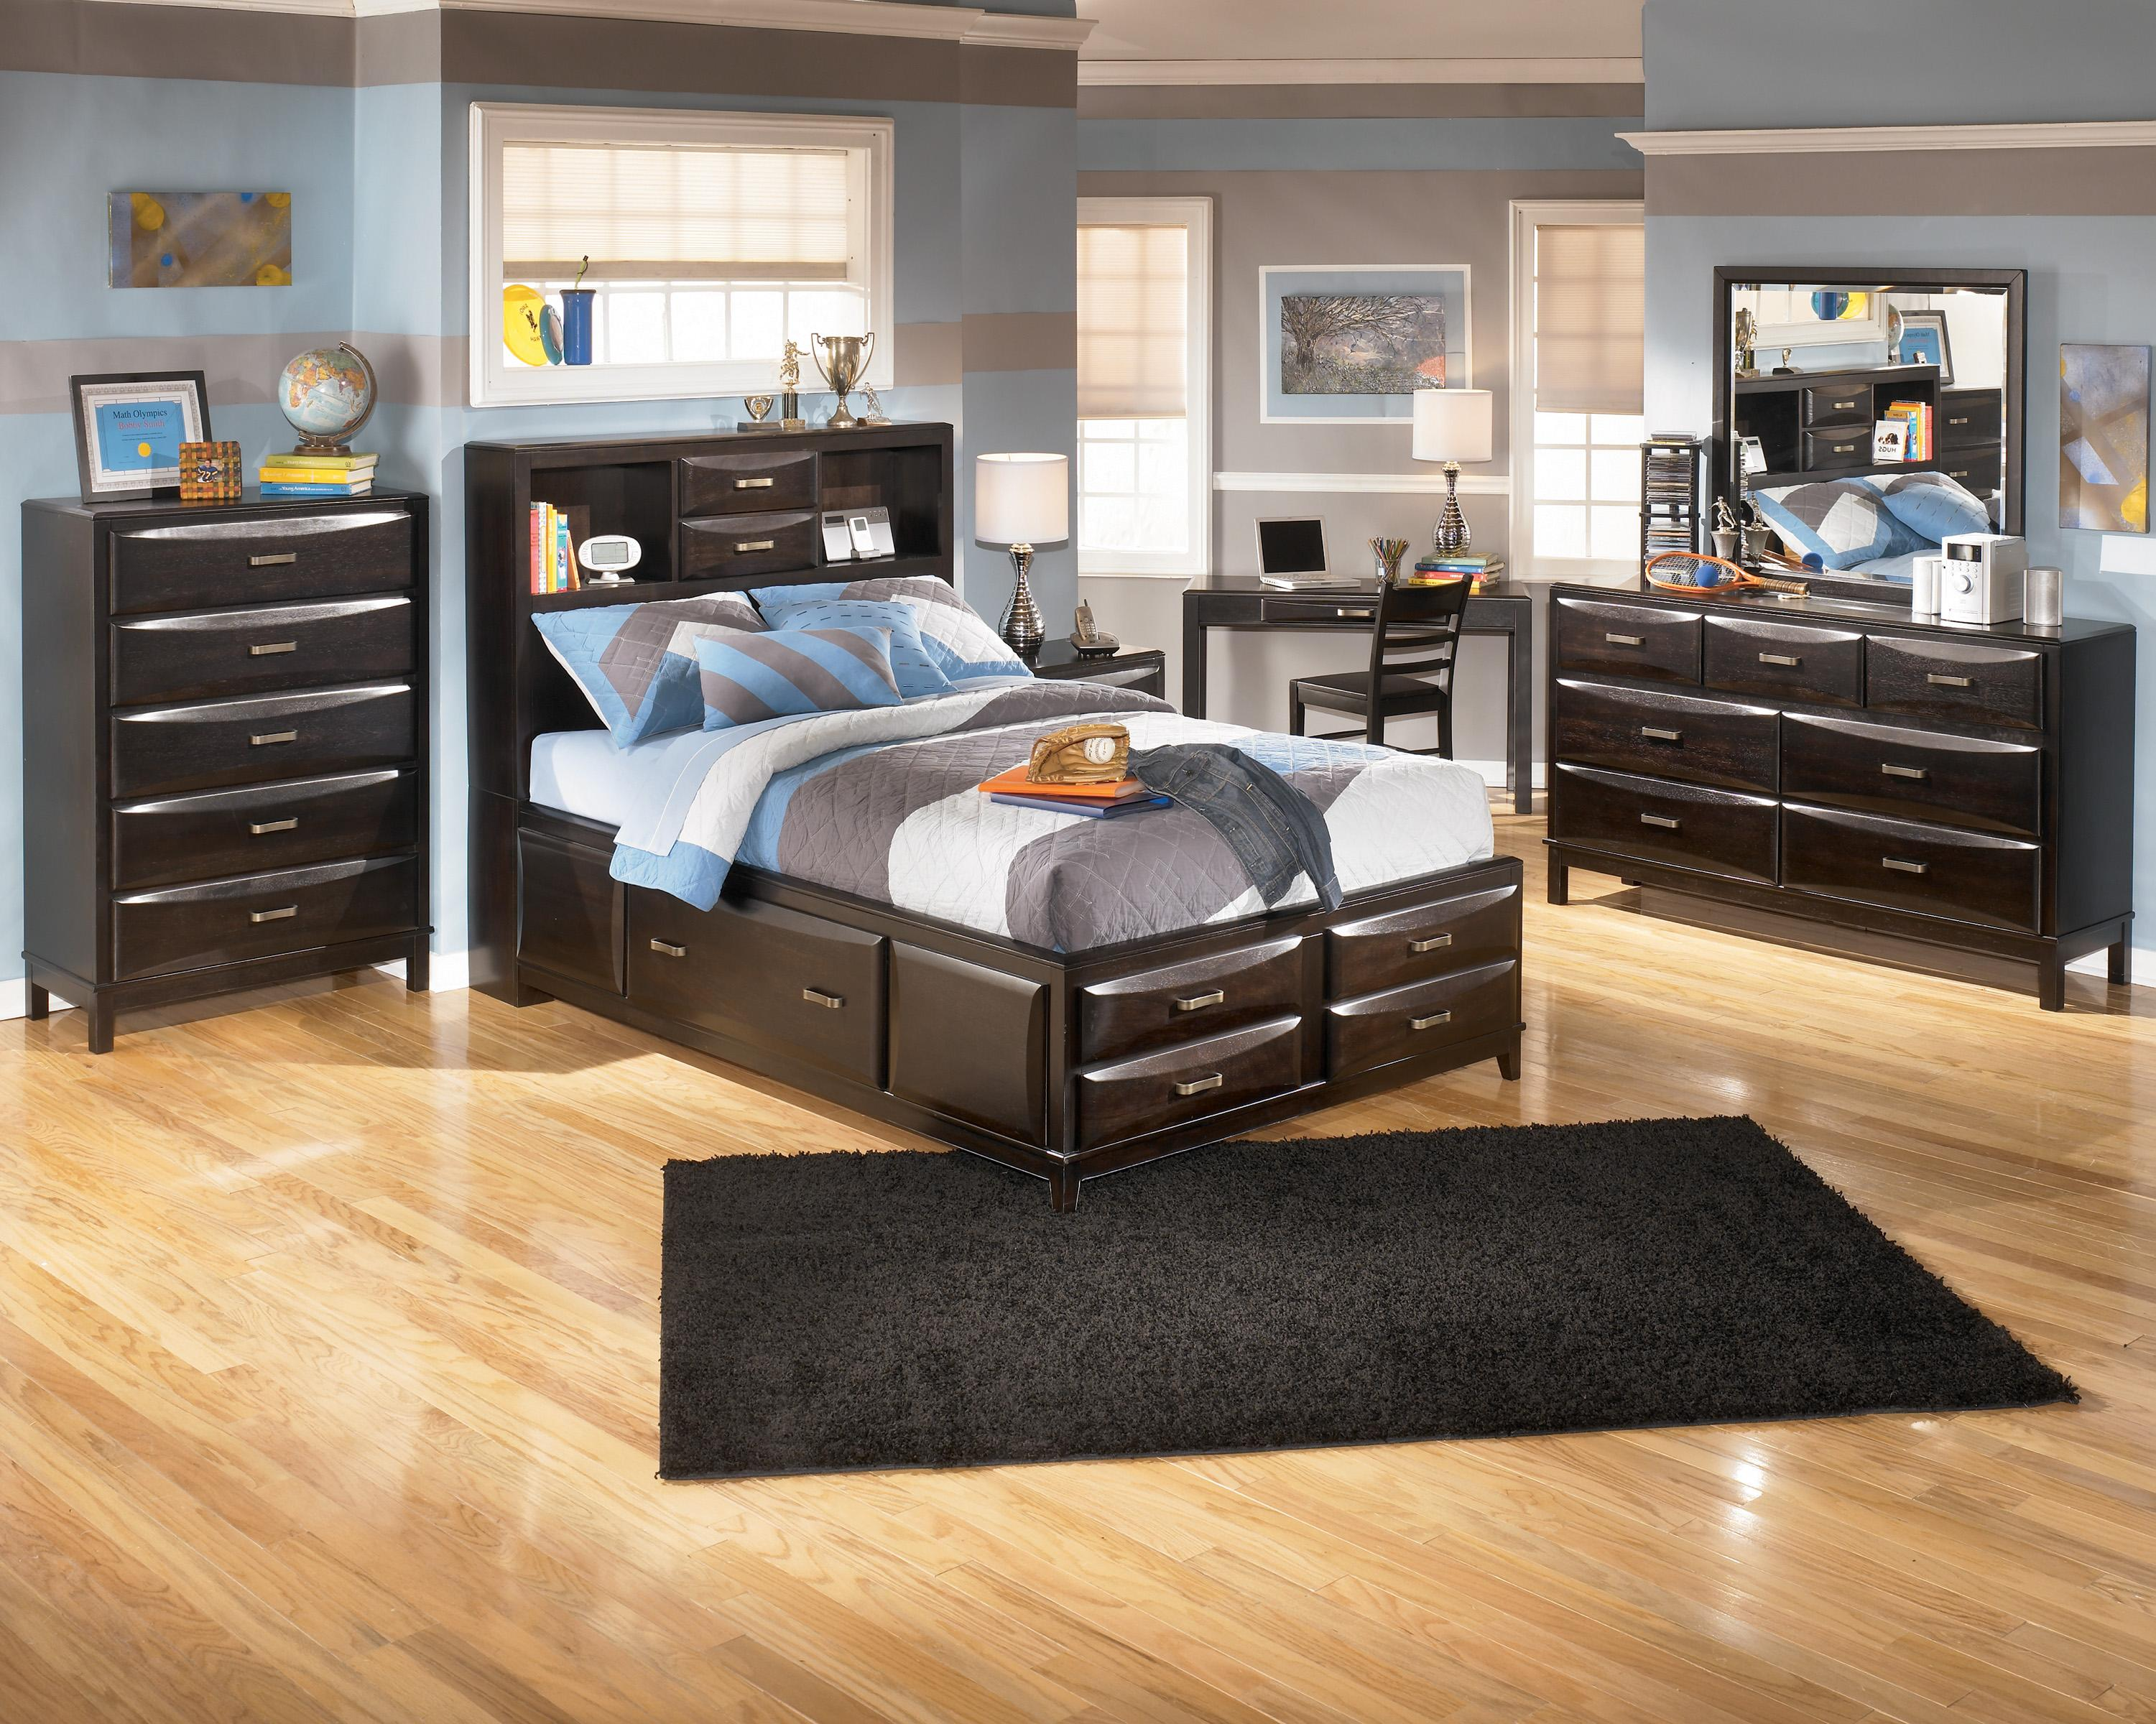 Ashley furniture kira full storage bed ahfa captain 39 s beds - Ashley furniture full bedroom sets ...